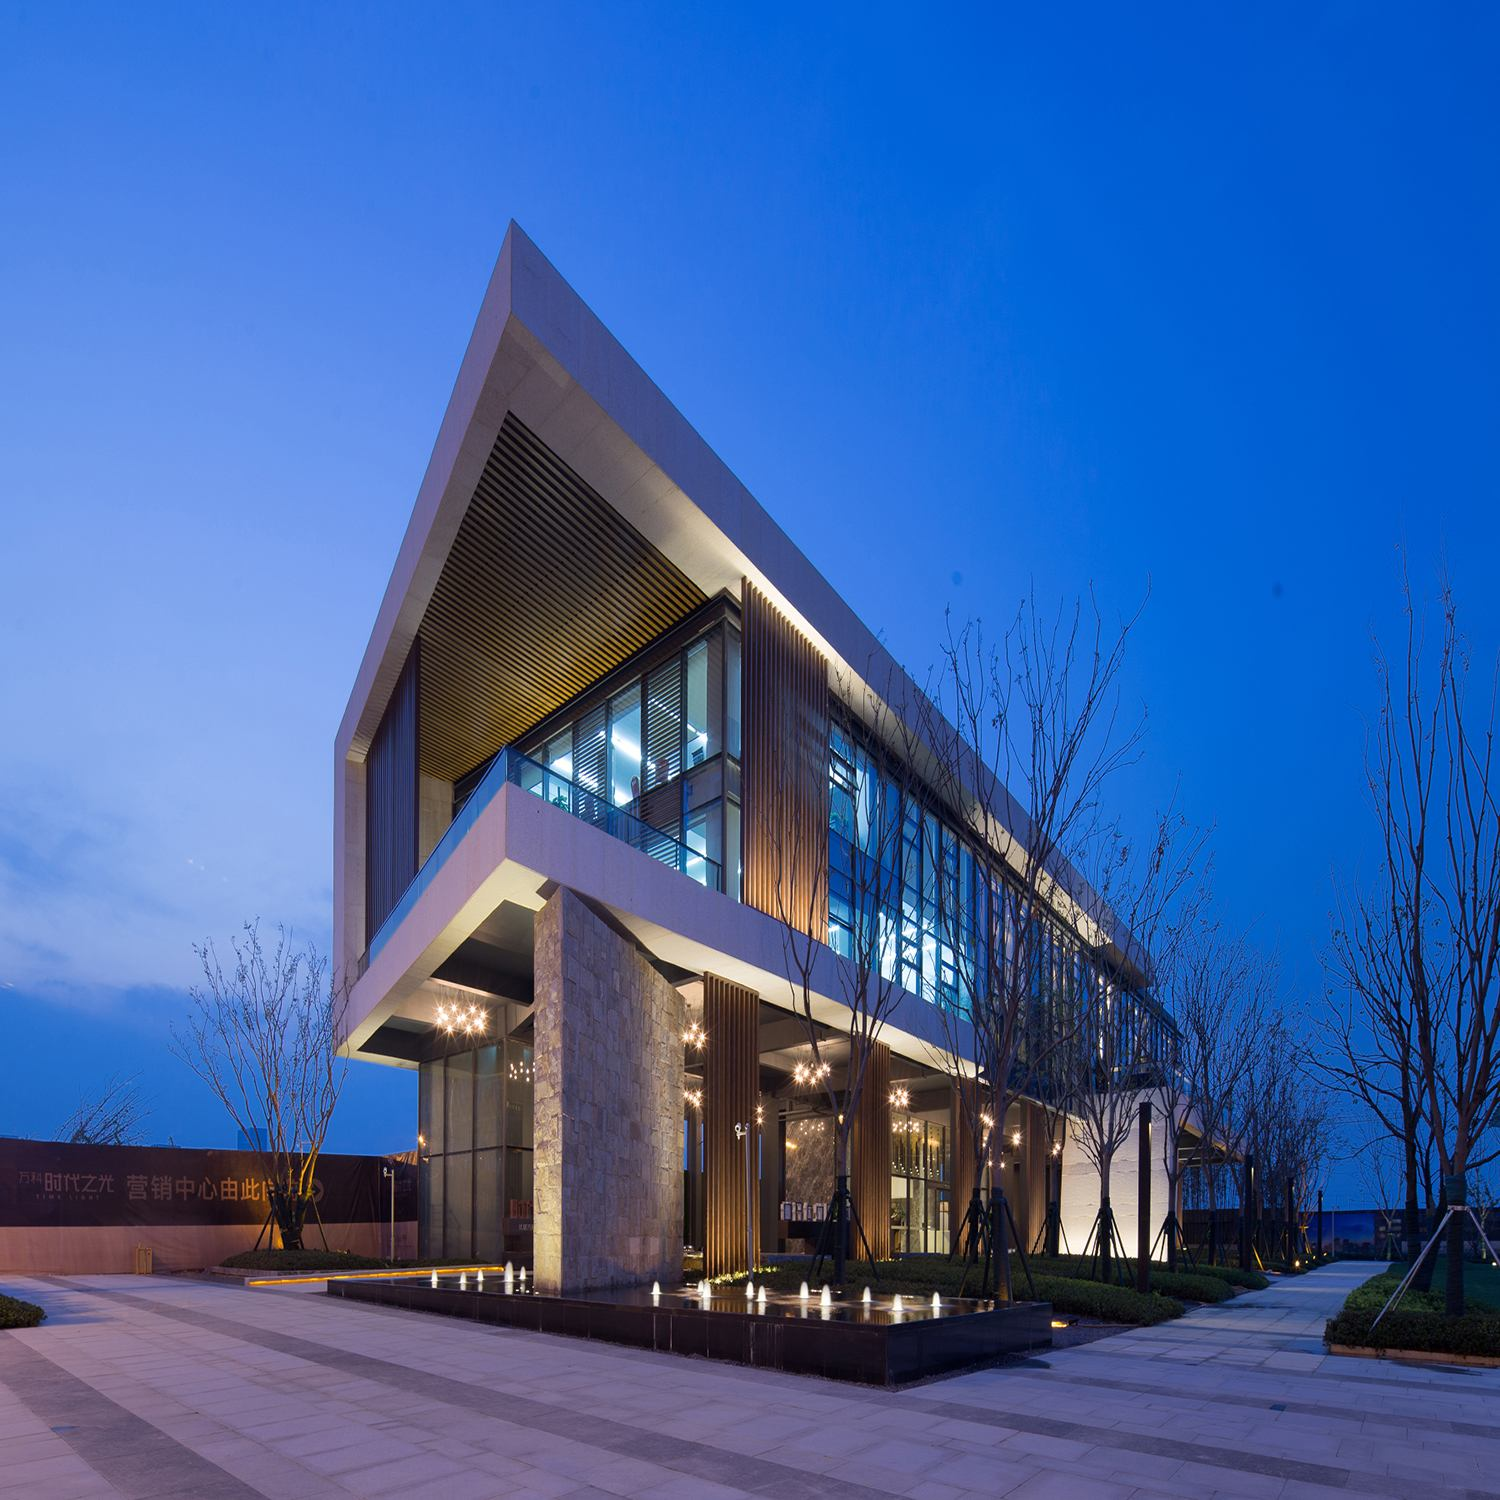 Hefei Vanke Sales Center It is a sales center by Raynon Chiu